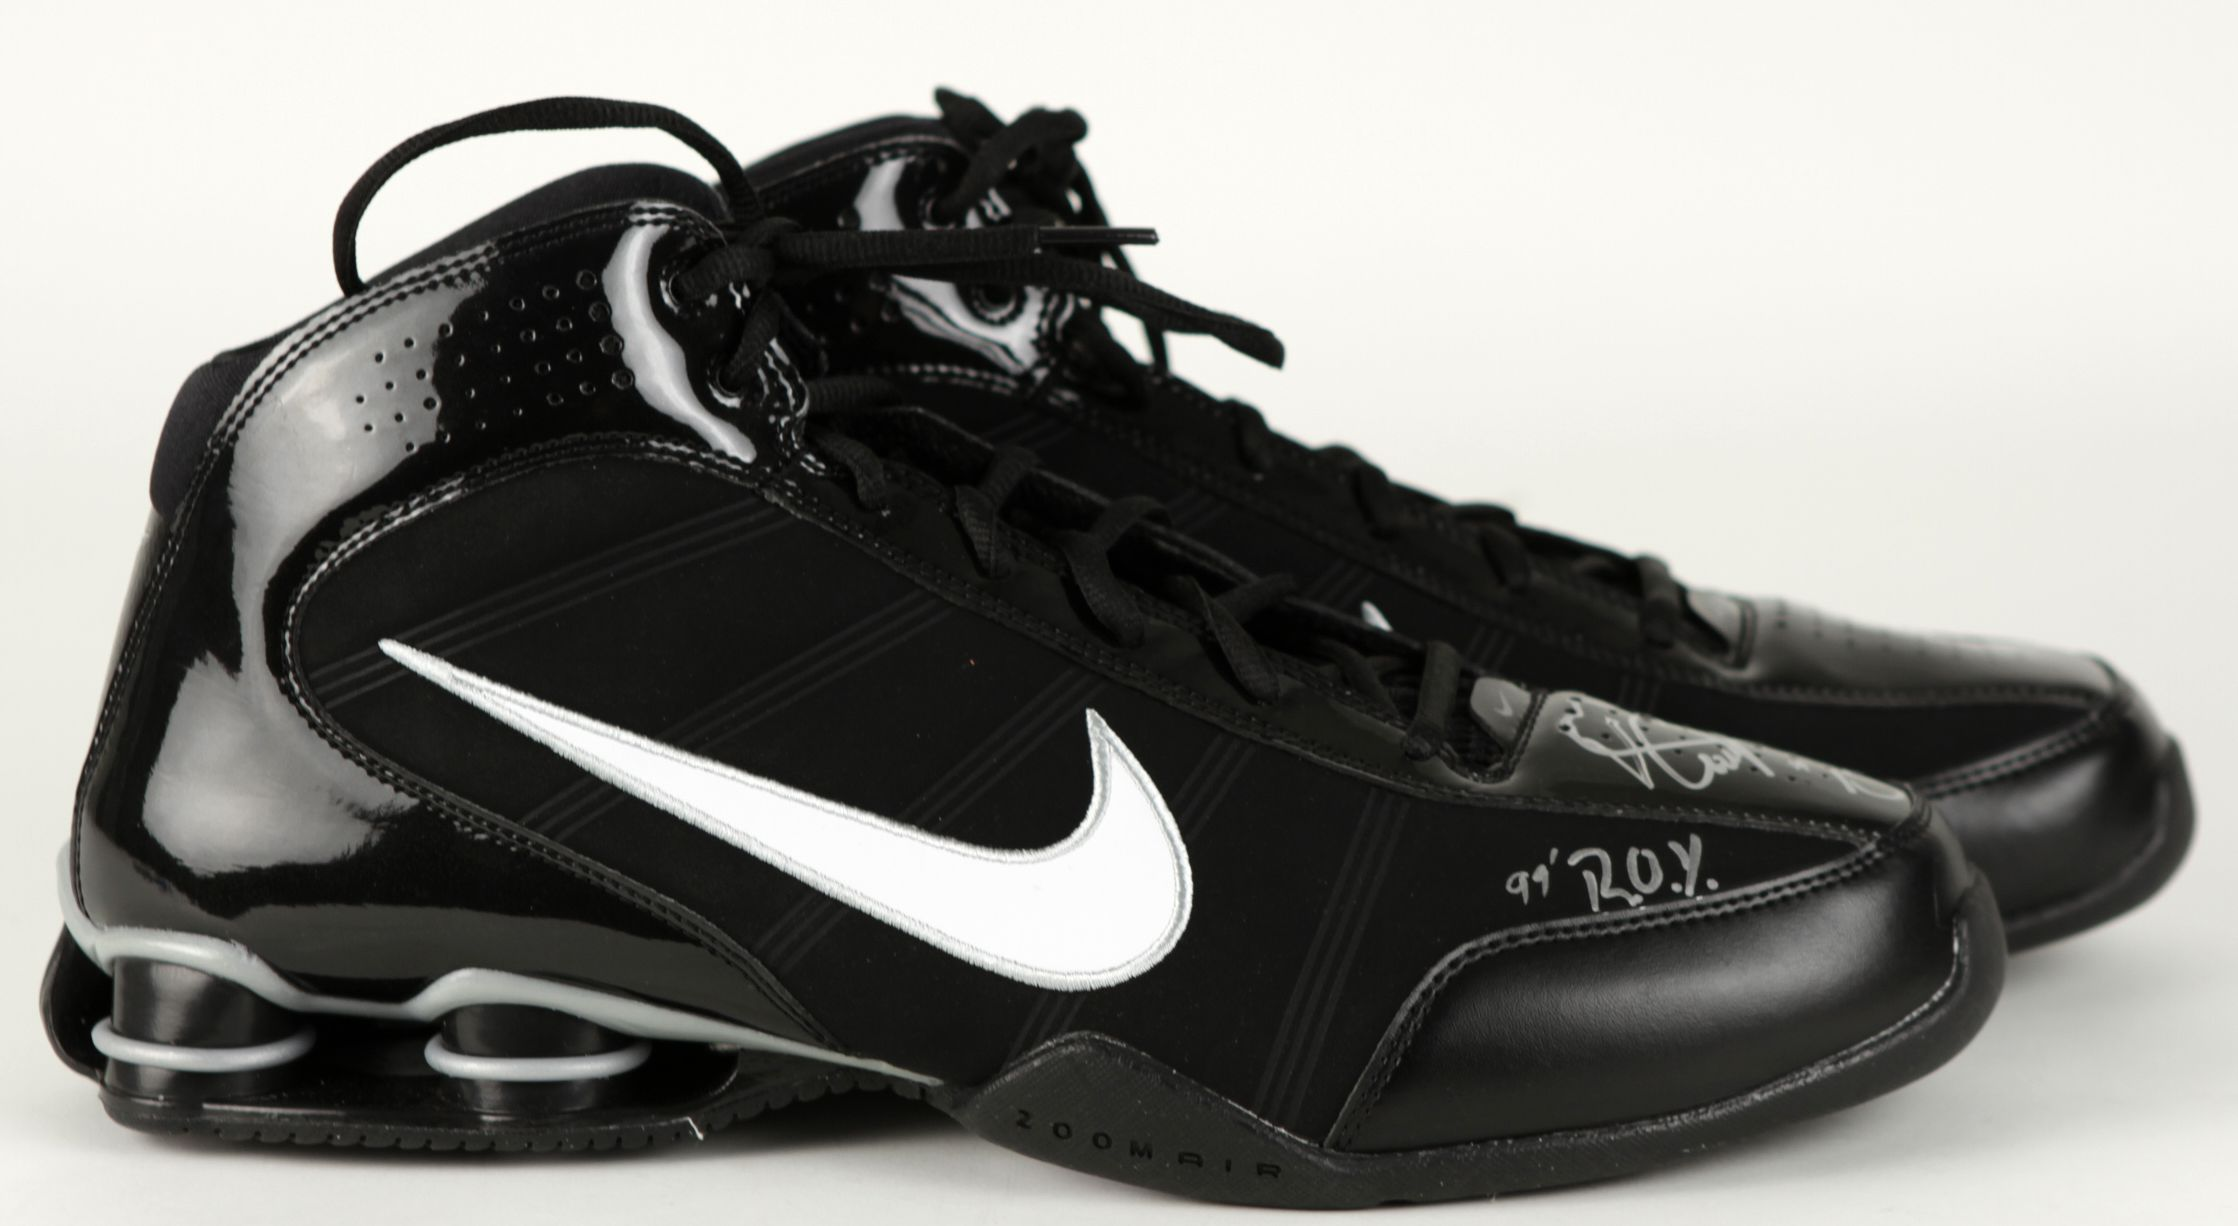 official photos 95d87 2e184 2009 Vince Carter Orlando Magic Signed Nike Basketball Shoes - JSA. Tap to  expand